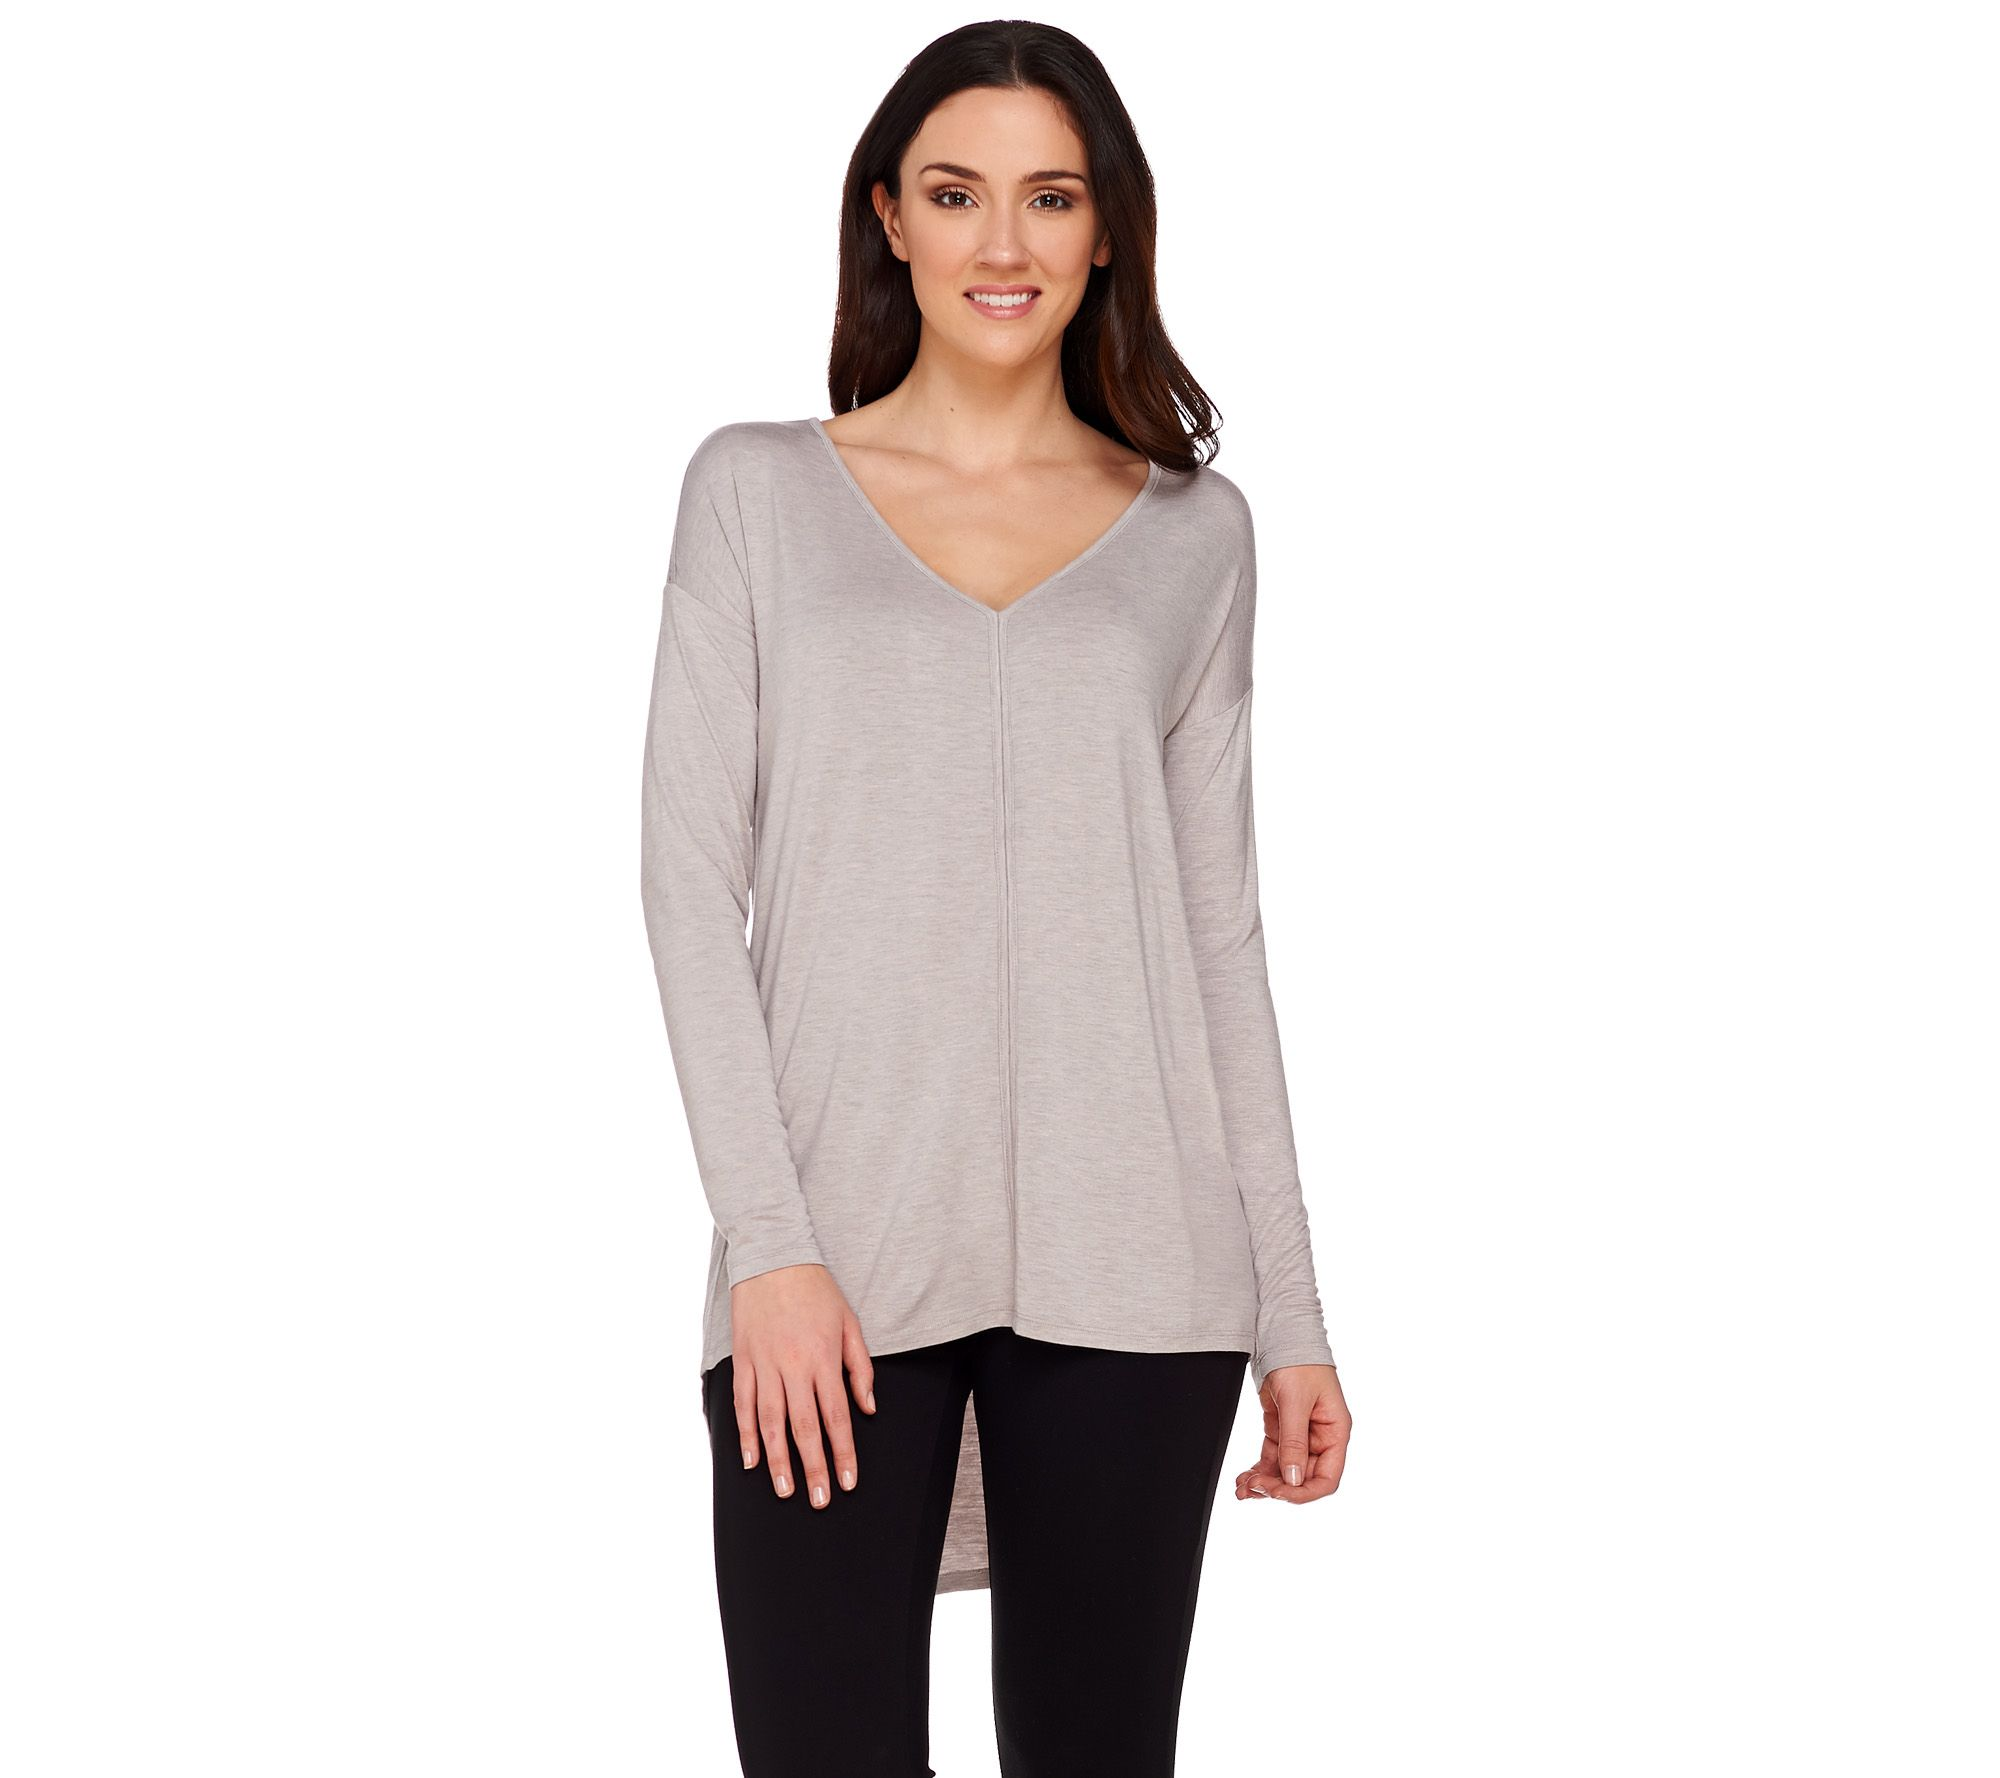 H by Halston Knit Long Sleeve Top with Ladder Stitch Shoulder